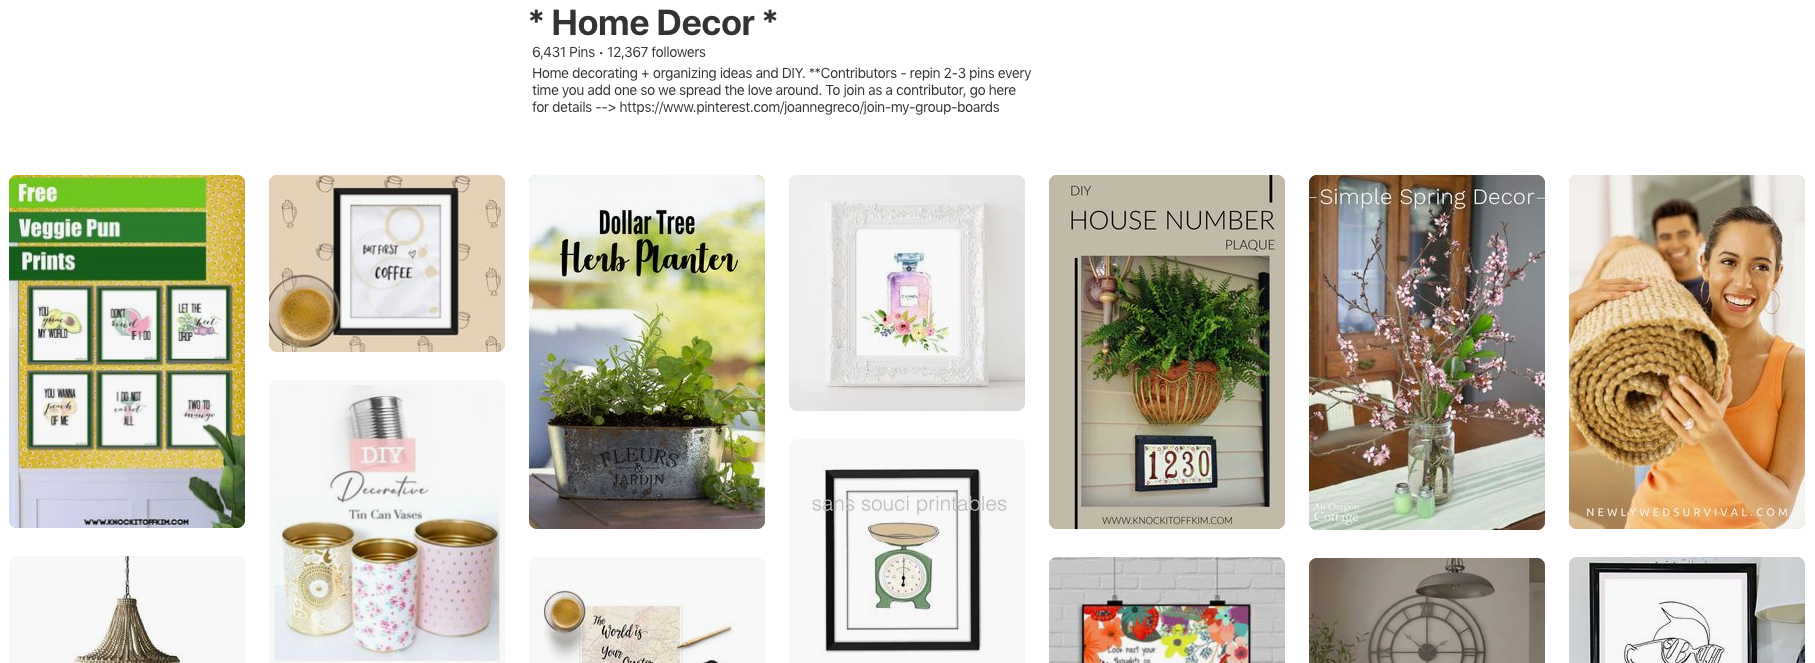 Pinterest Home Decor Group Board